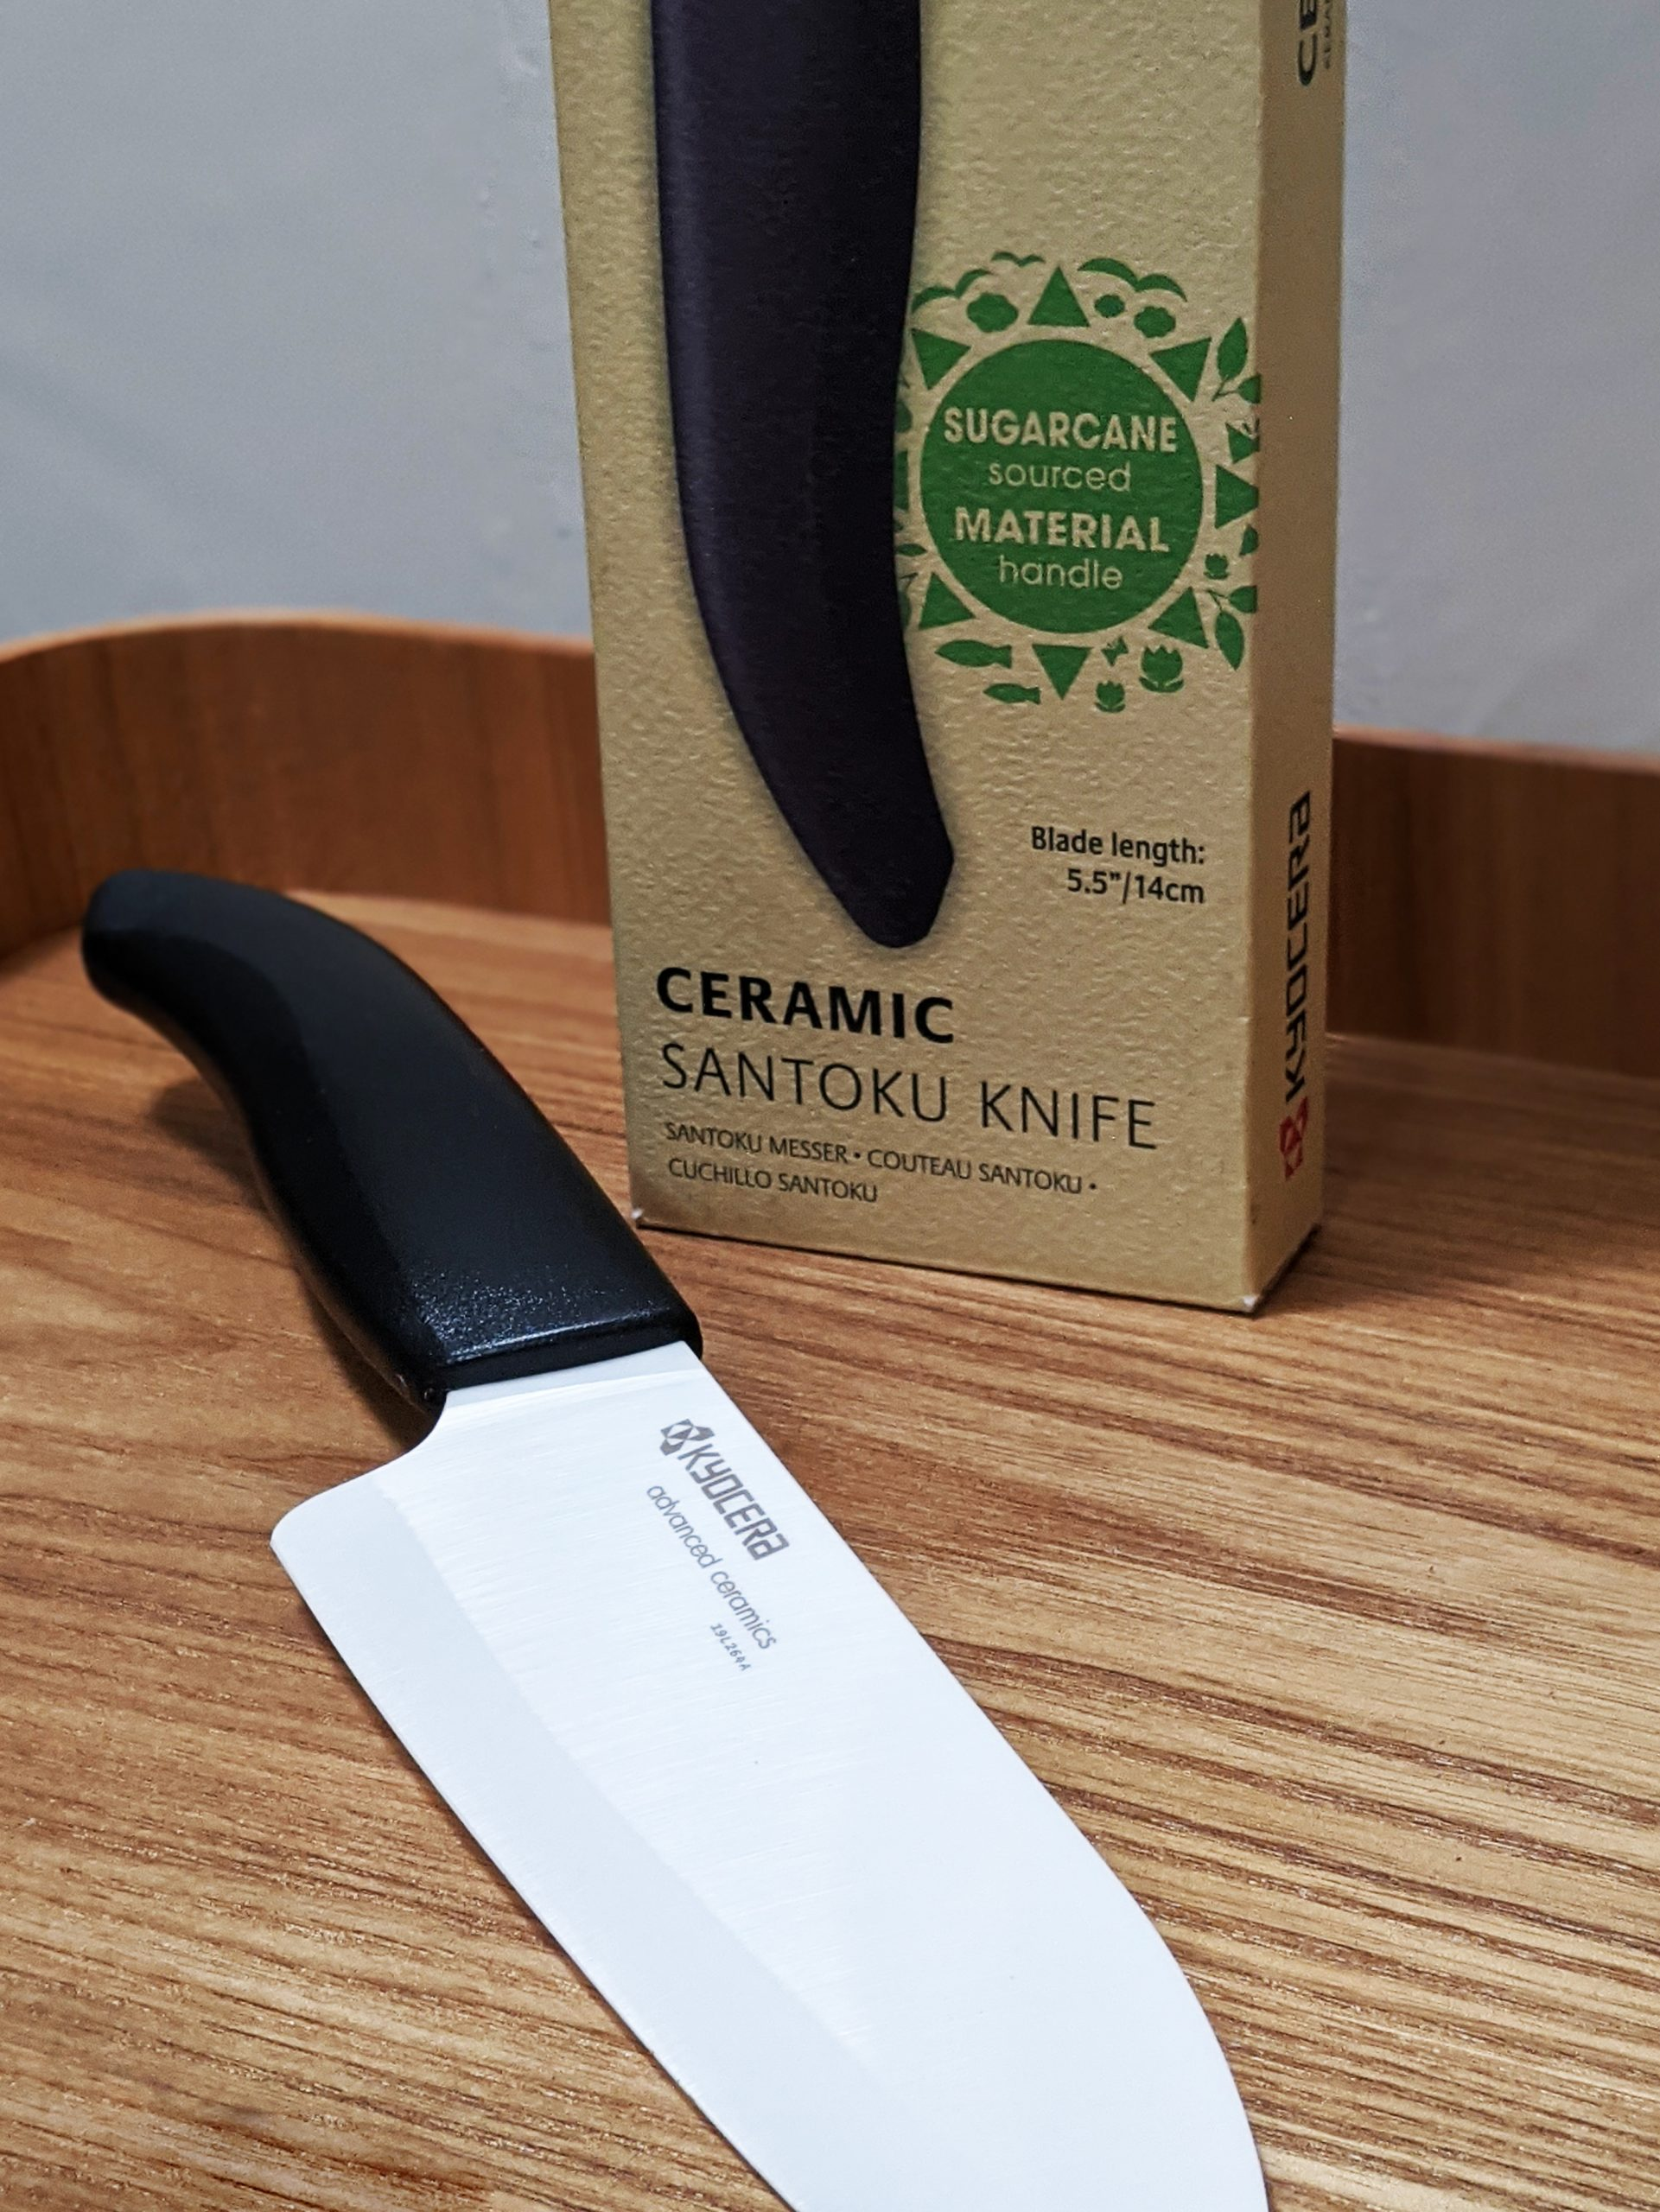 Kyocera launches Bio Series ceramic knives for eco-conscious cooks.